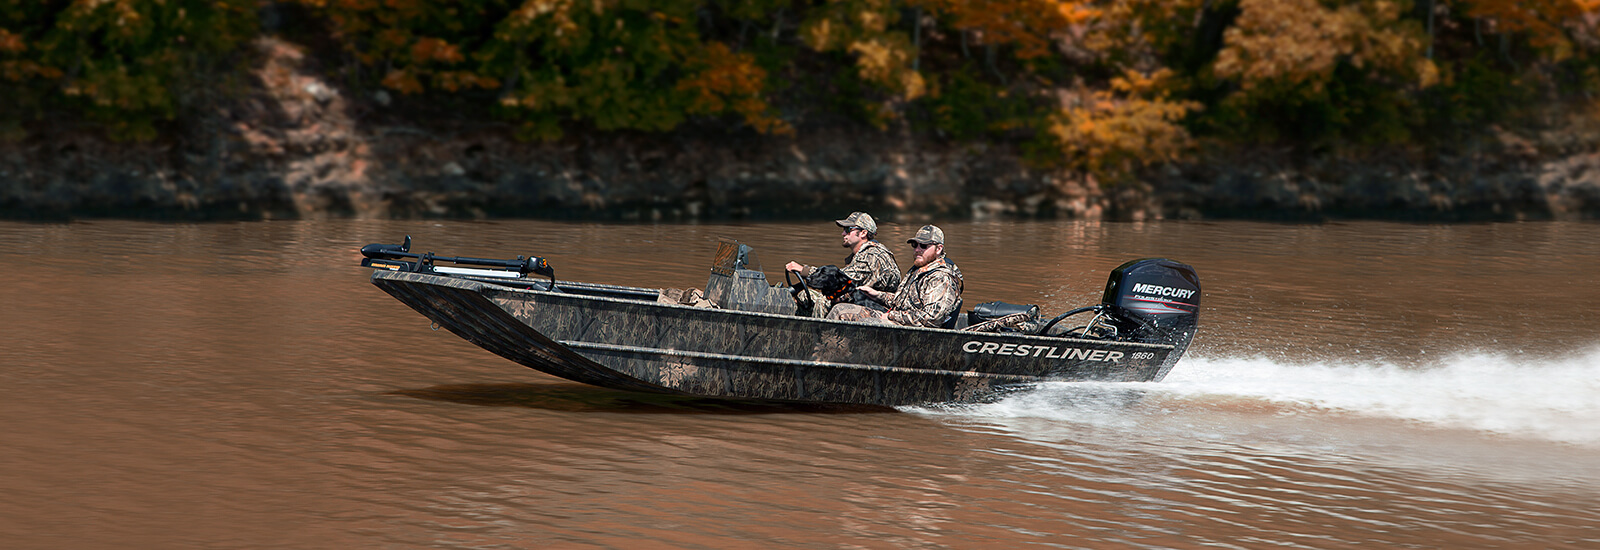 Crestliner 1860 Retriever SC/CC | Aluminum Duck Hunting Boats on